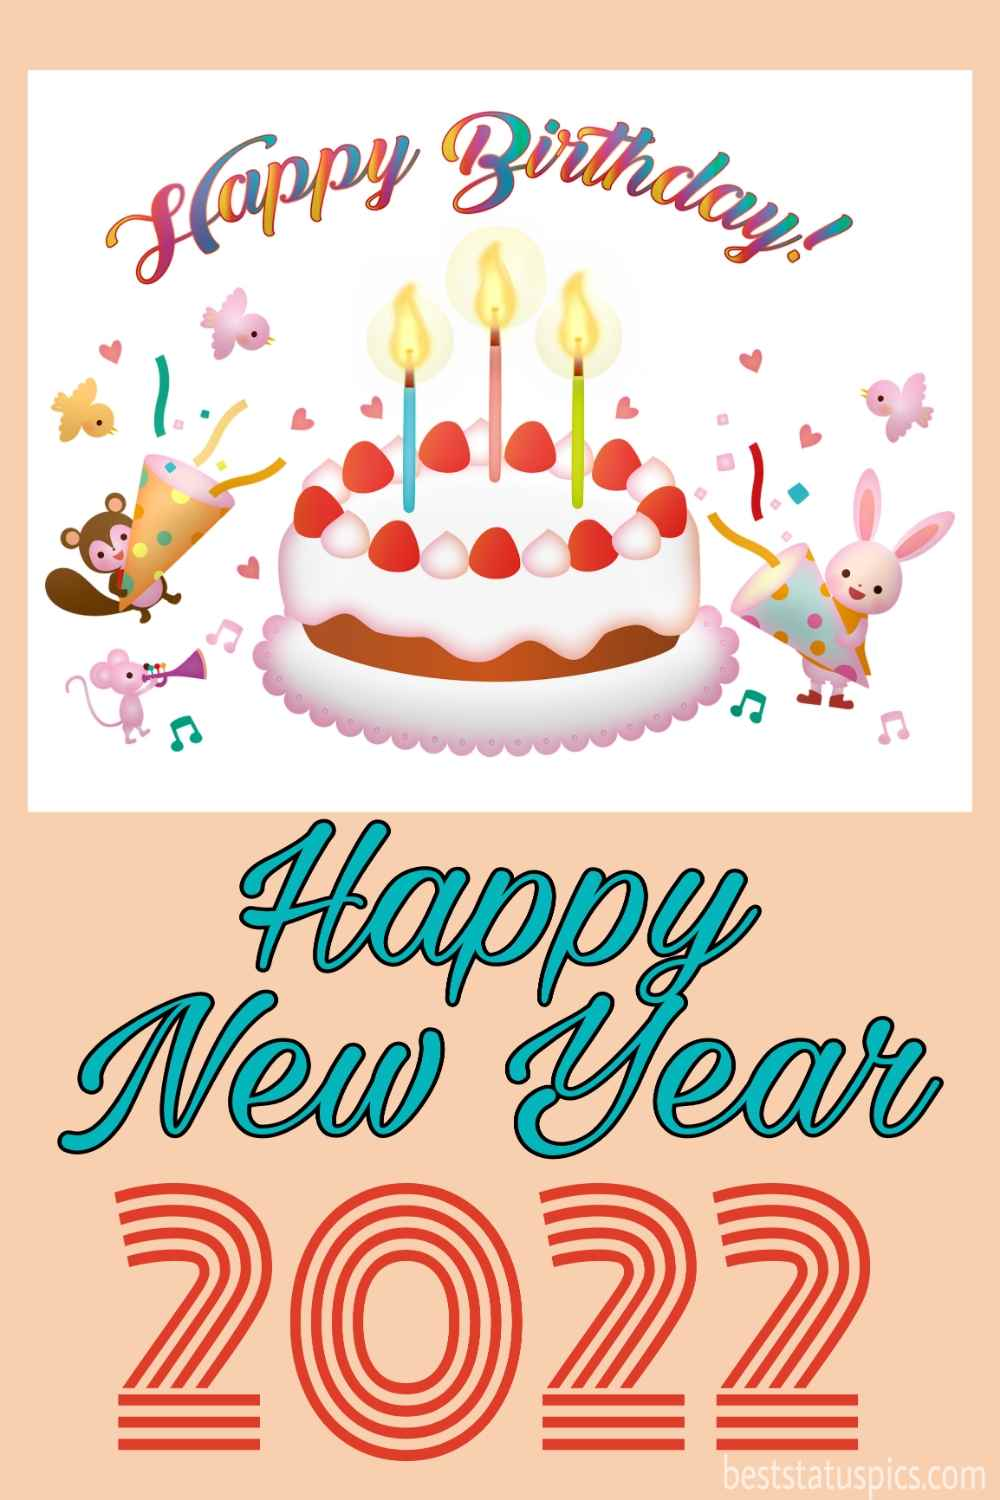 Happy Birthday and Happy new year 2022 greetings and ecards with cake, cherries and candles for friends, kids, sister and brother